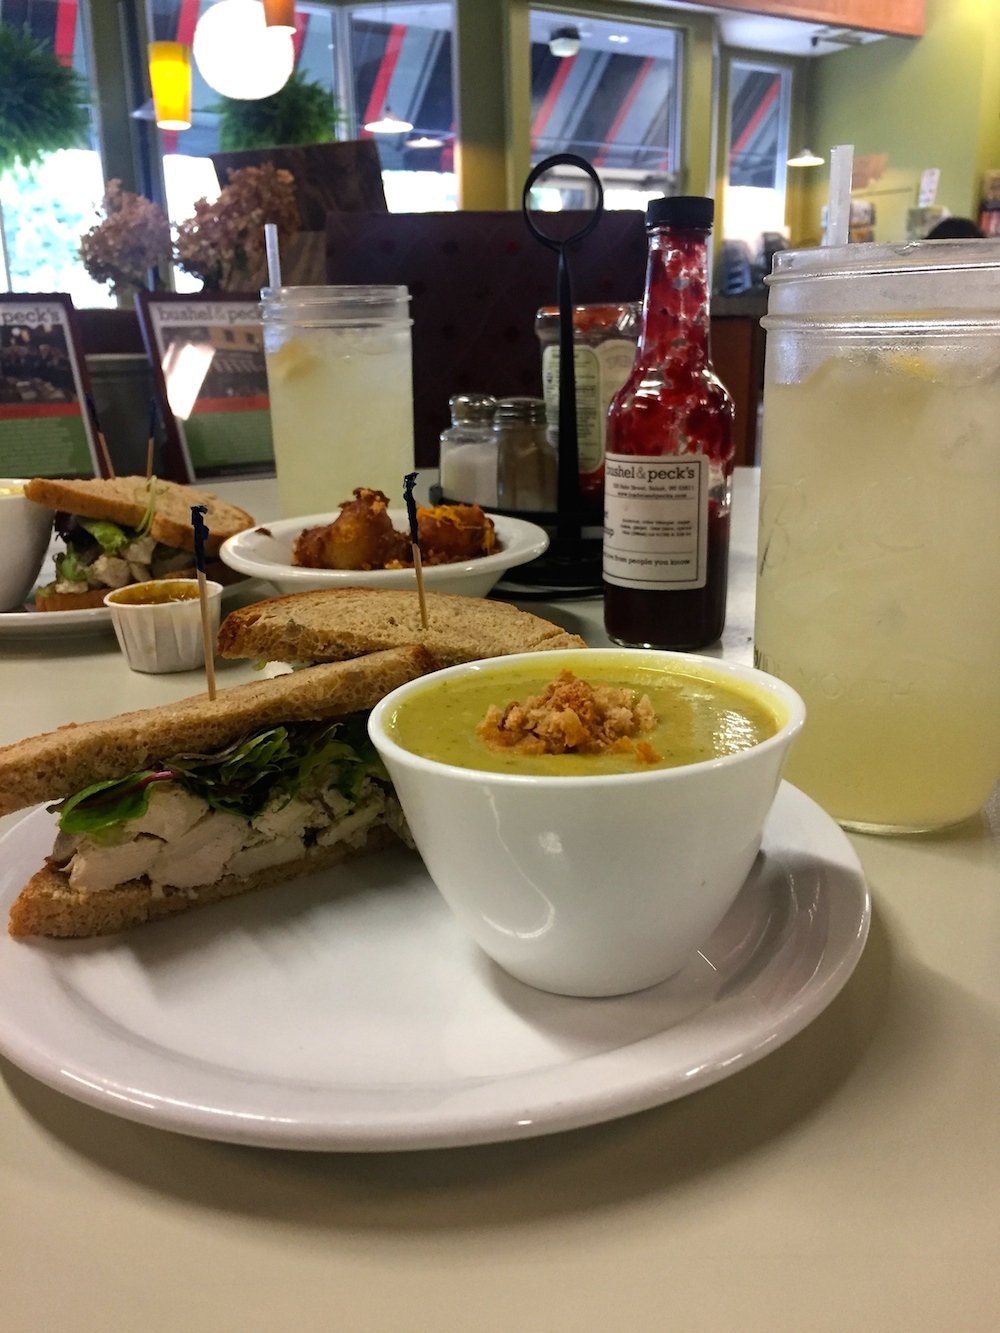 Chicken salad sandwich and soup at Bushel & Peck's in Beloit, Wisconsin